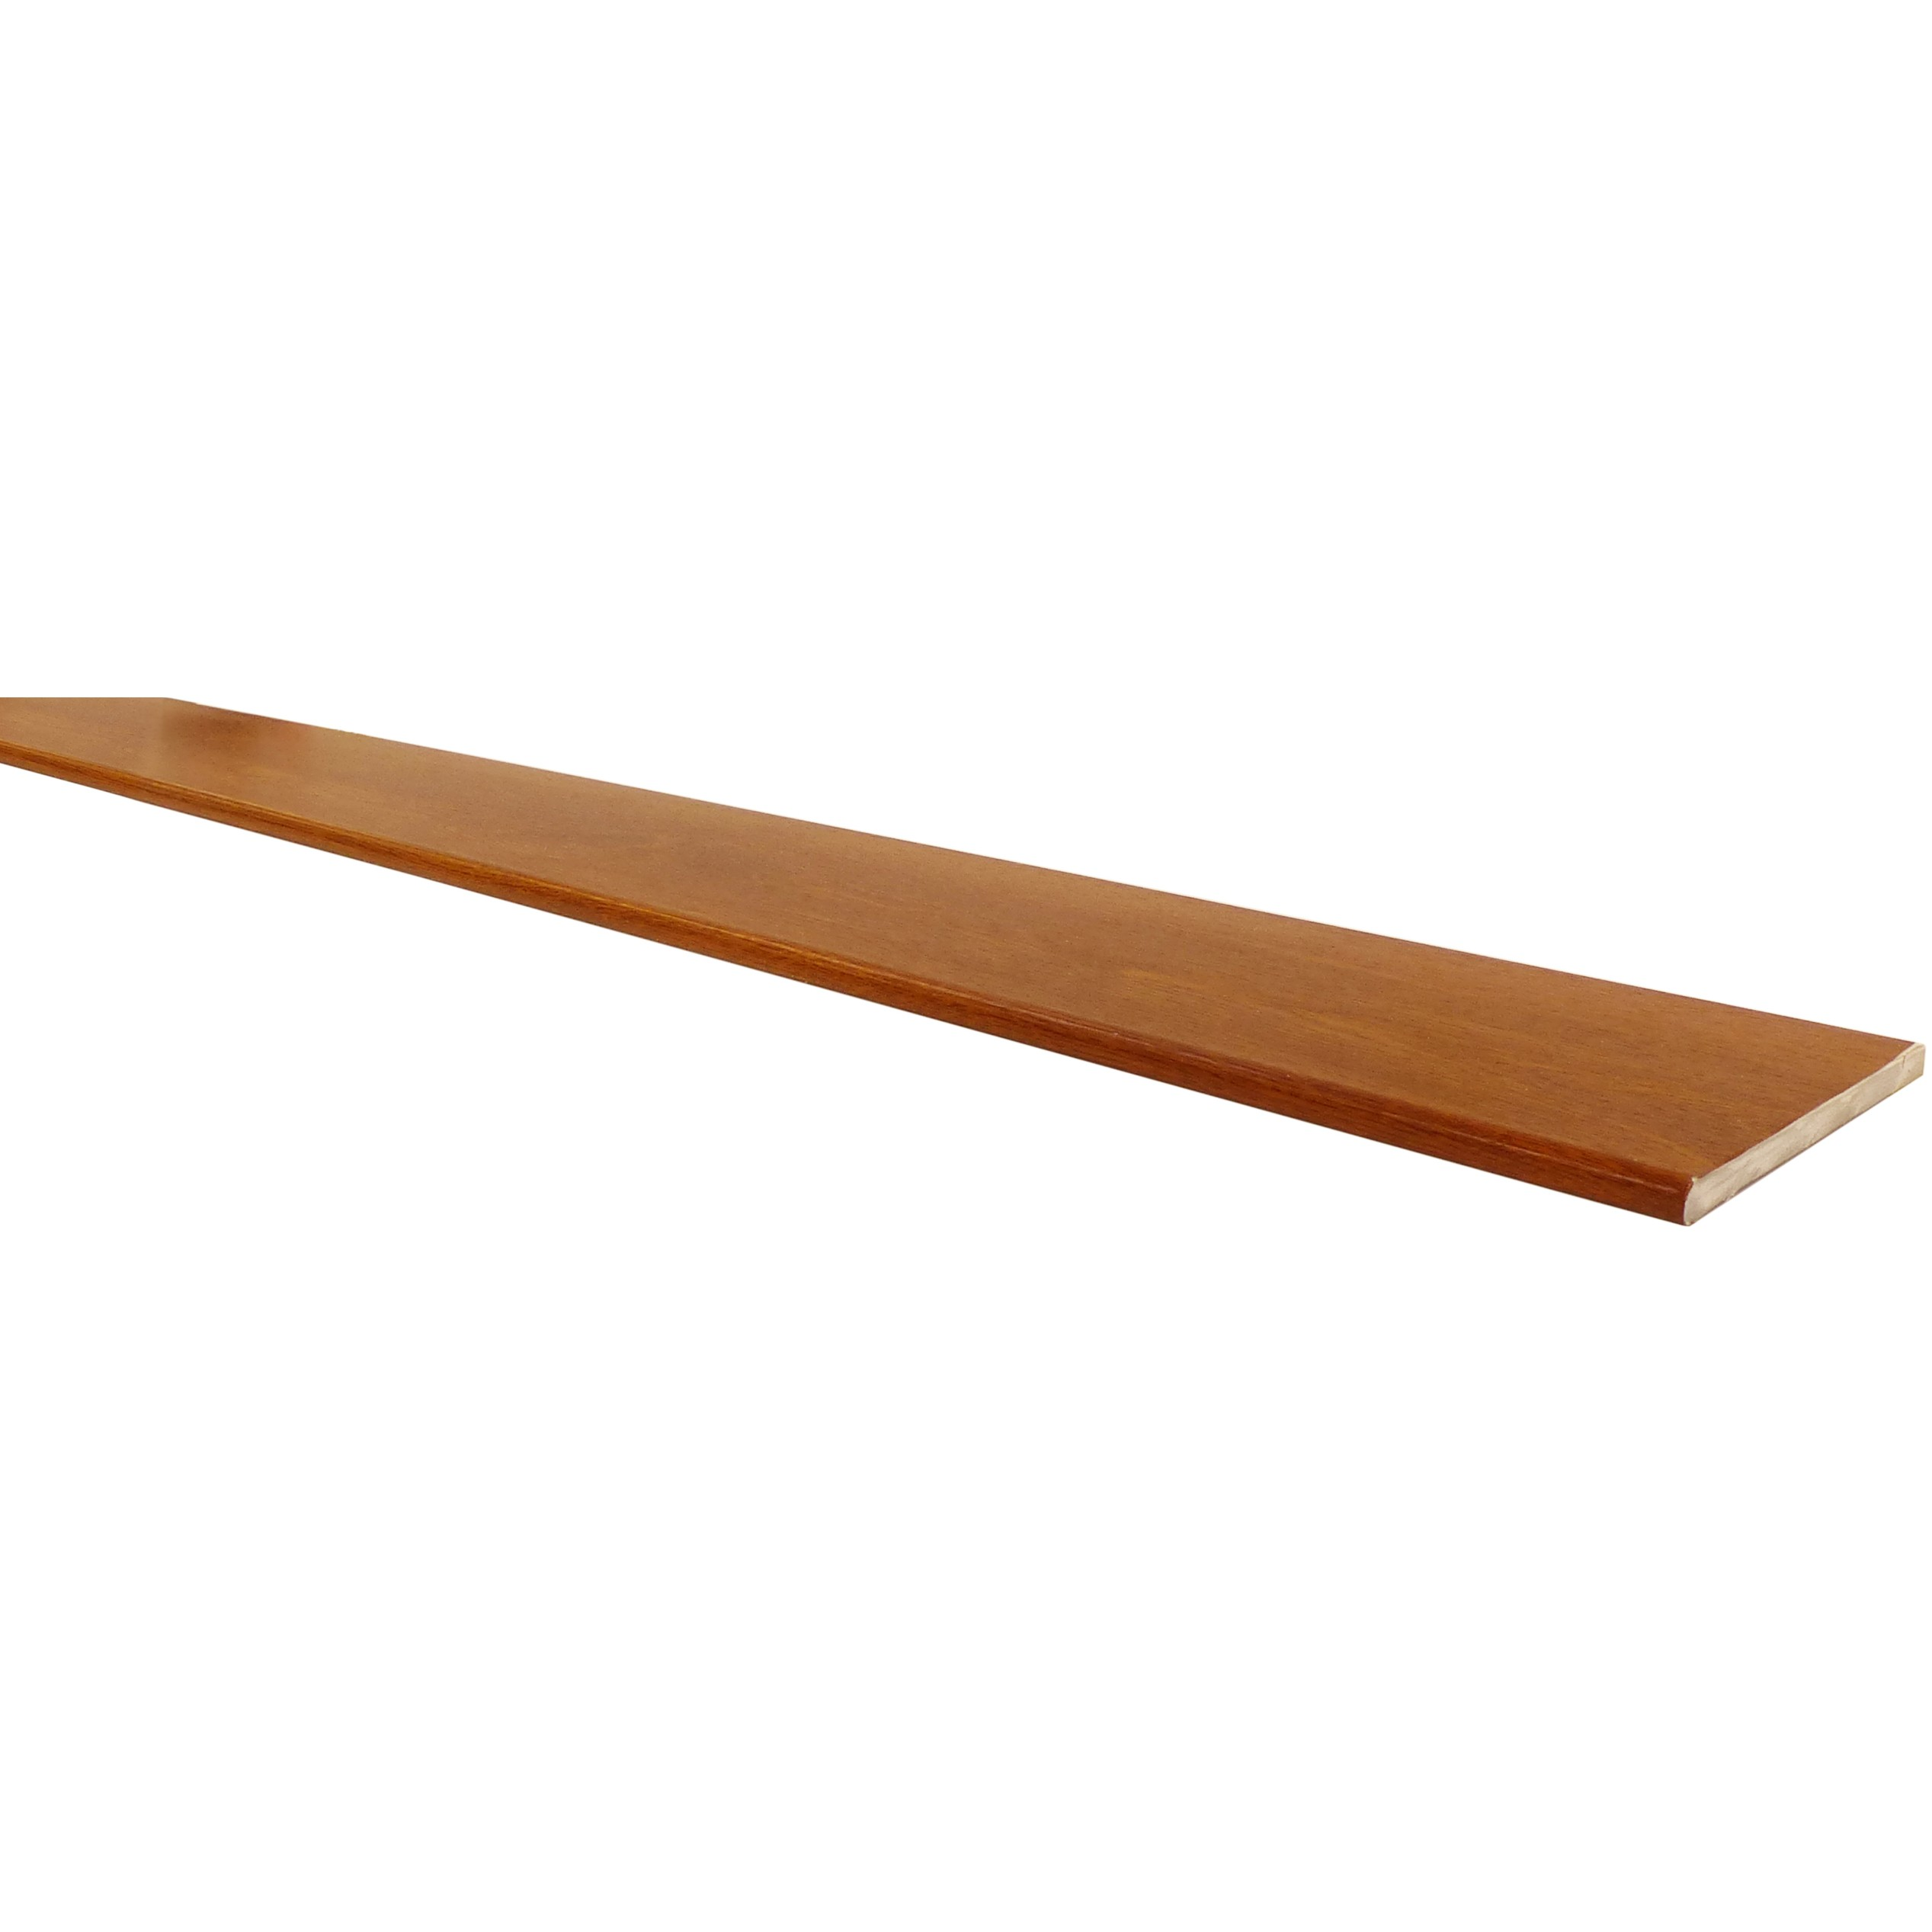 Freefoam 10mm Solid Soffit Board - Woodgrain Light Oak, 225mm, 5 metre